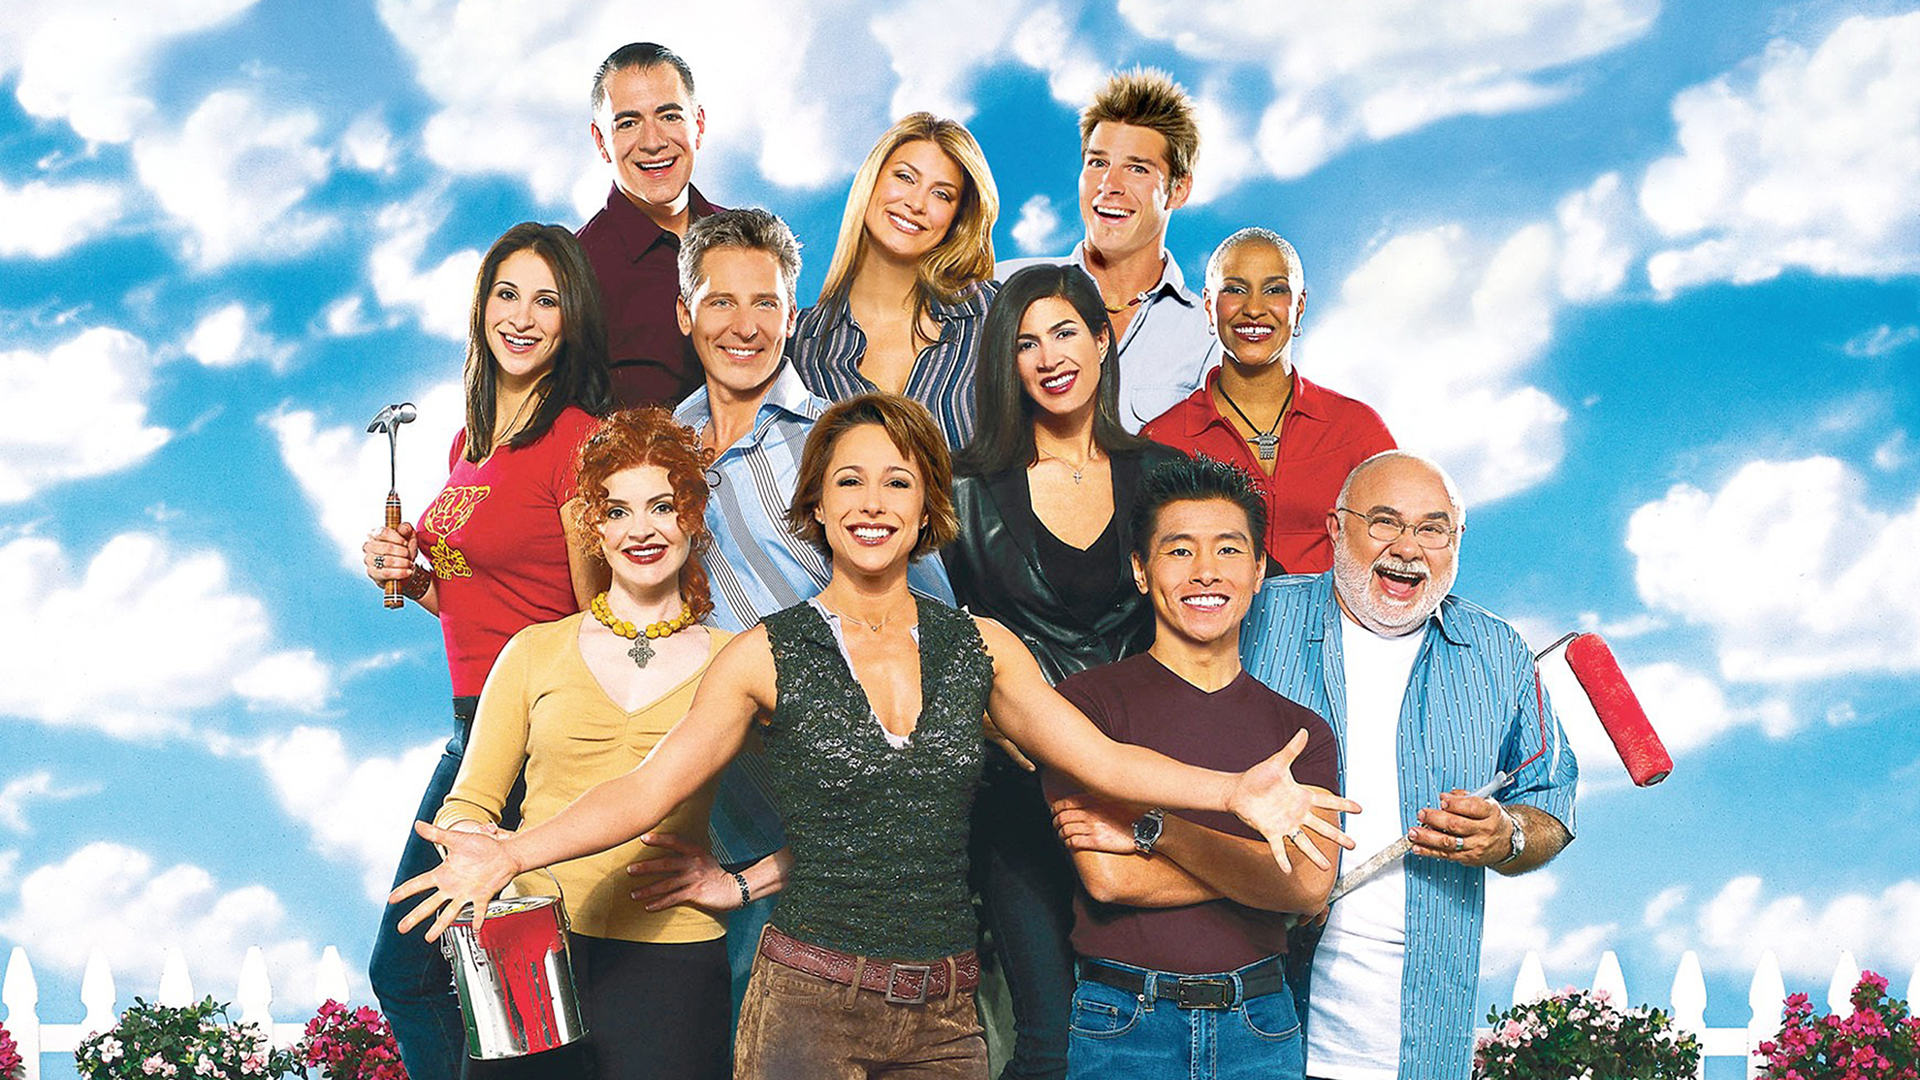 Paige Trading Spaces Trading Spaces Reboot Has A Premiere Date On Tlc Today Com